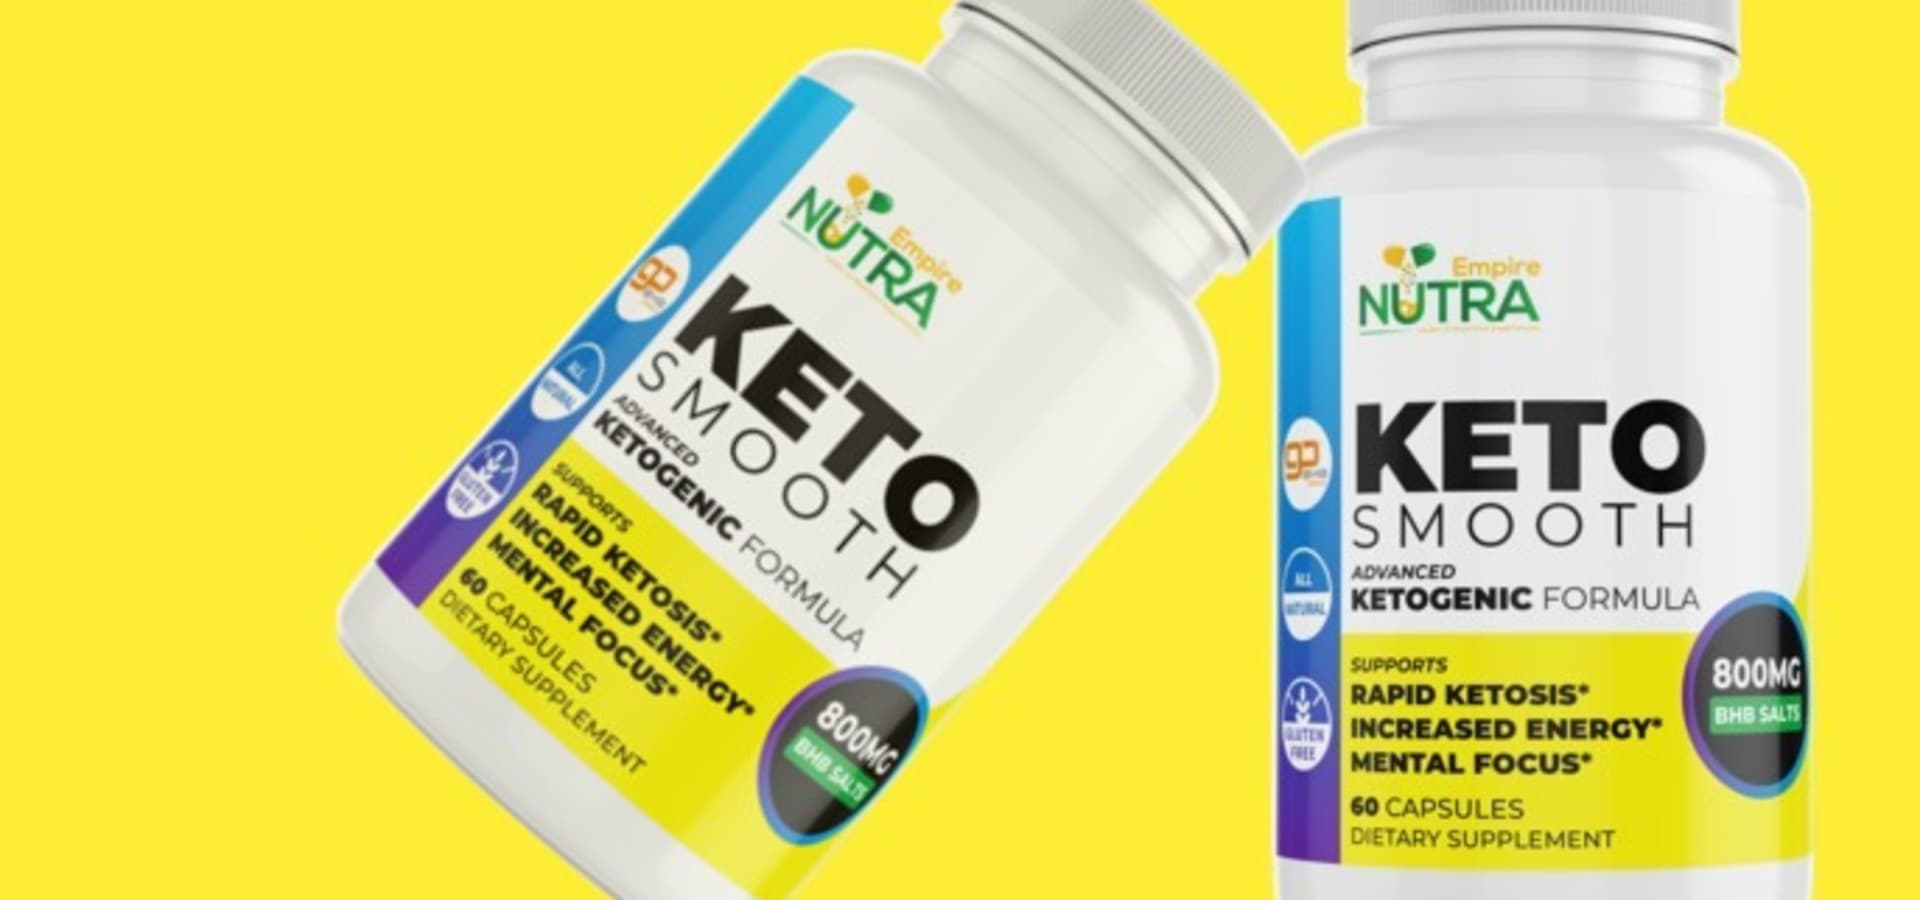 Nutra Empires Keto Smooth: Heating, Ventilation & Air Conditioning  Contractors in New York   homify